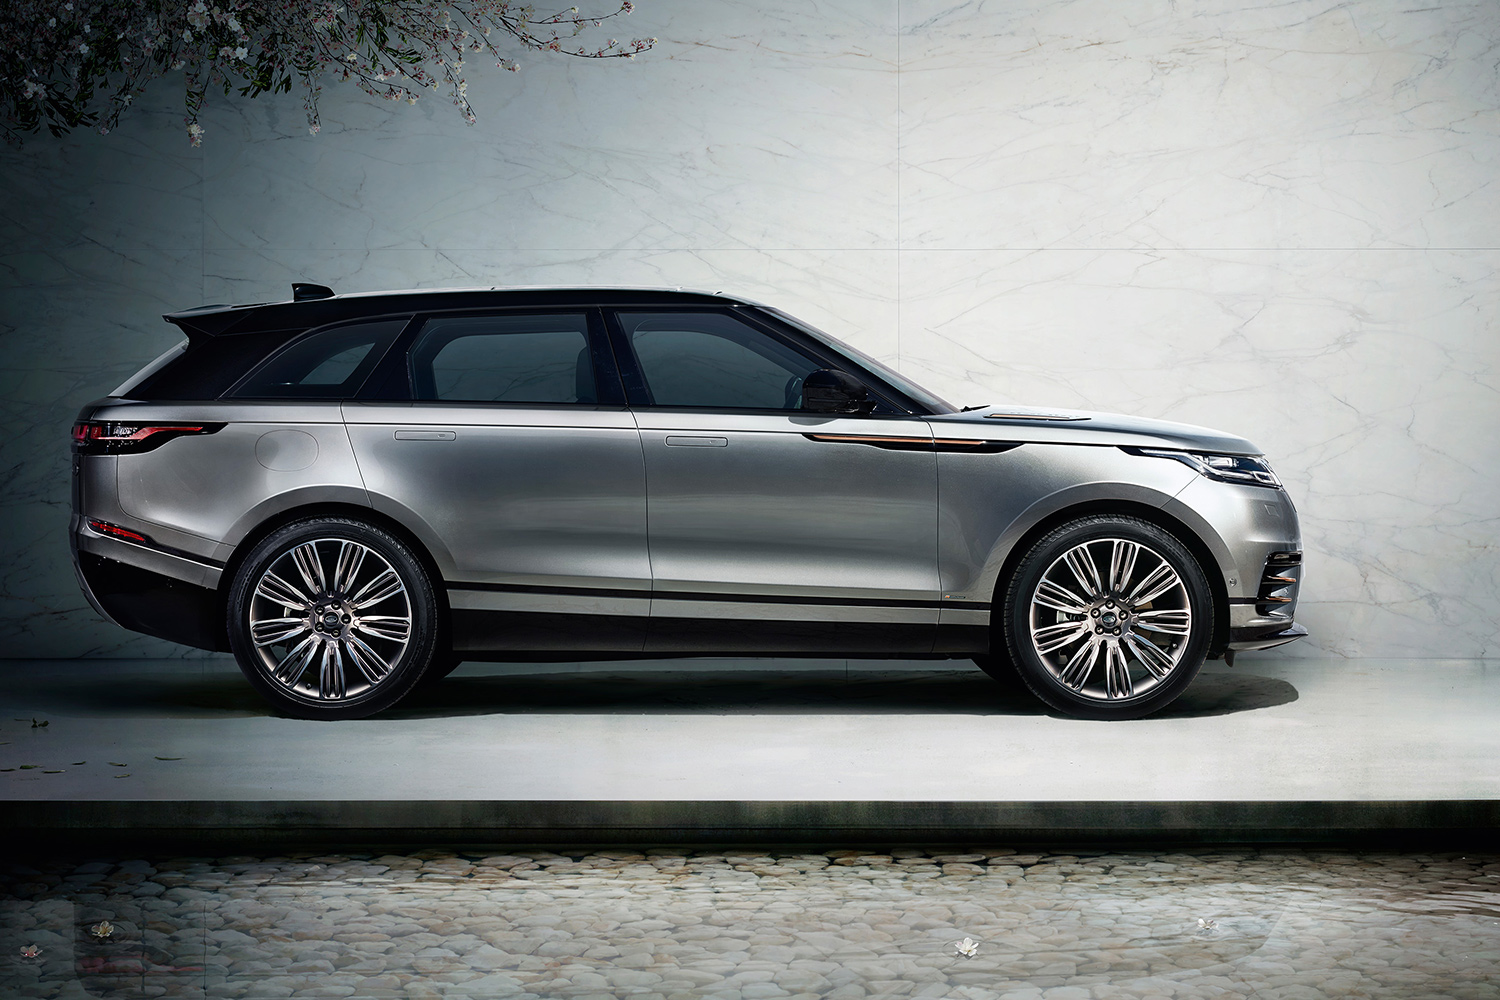 2018 Range Rover Velar Officially Revealed Ahead Of Geneva Motor Show Launch